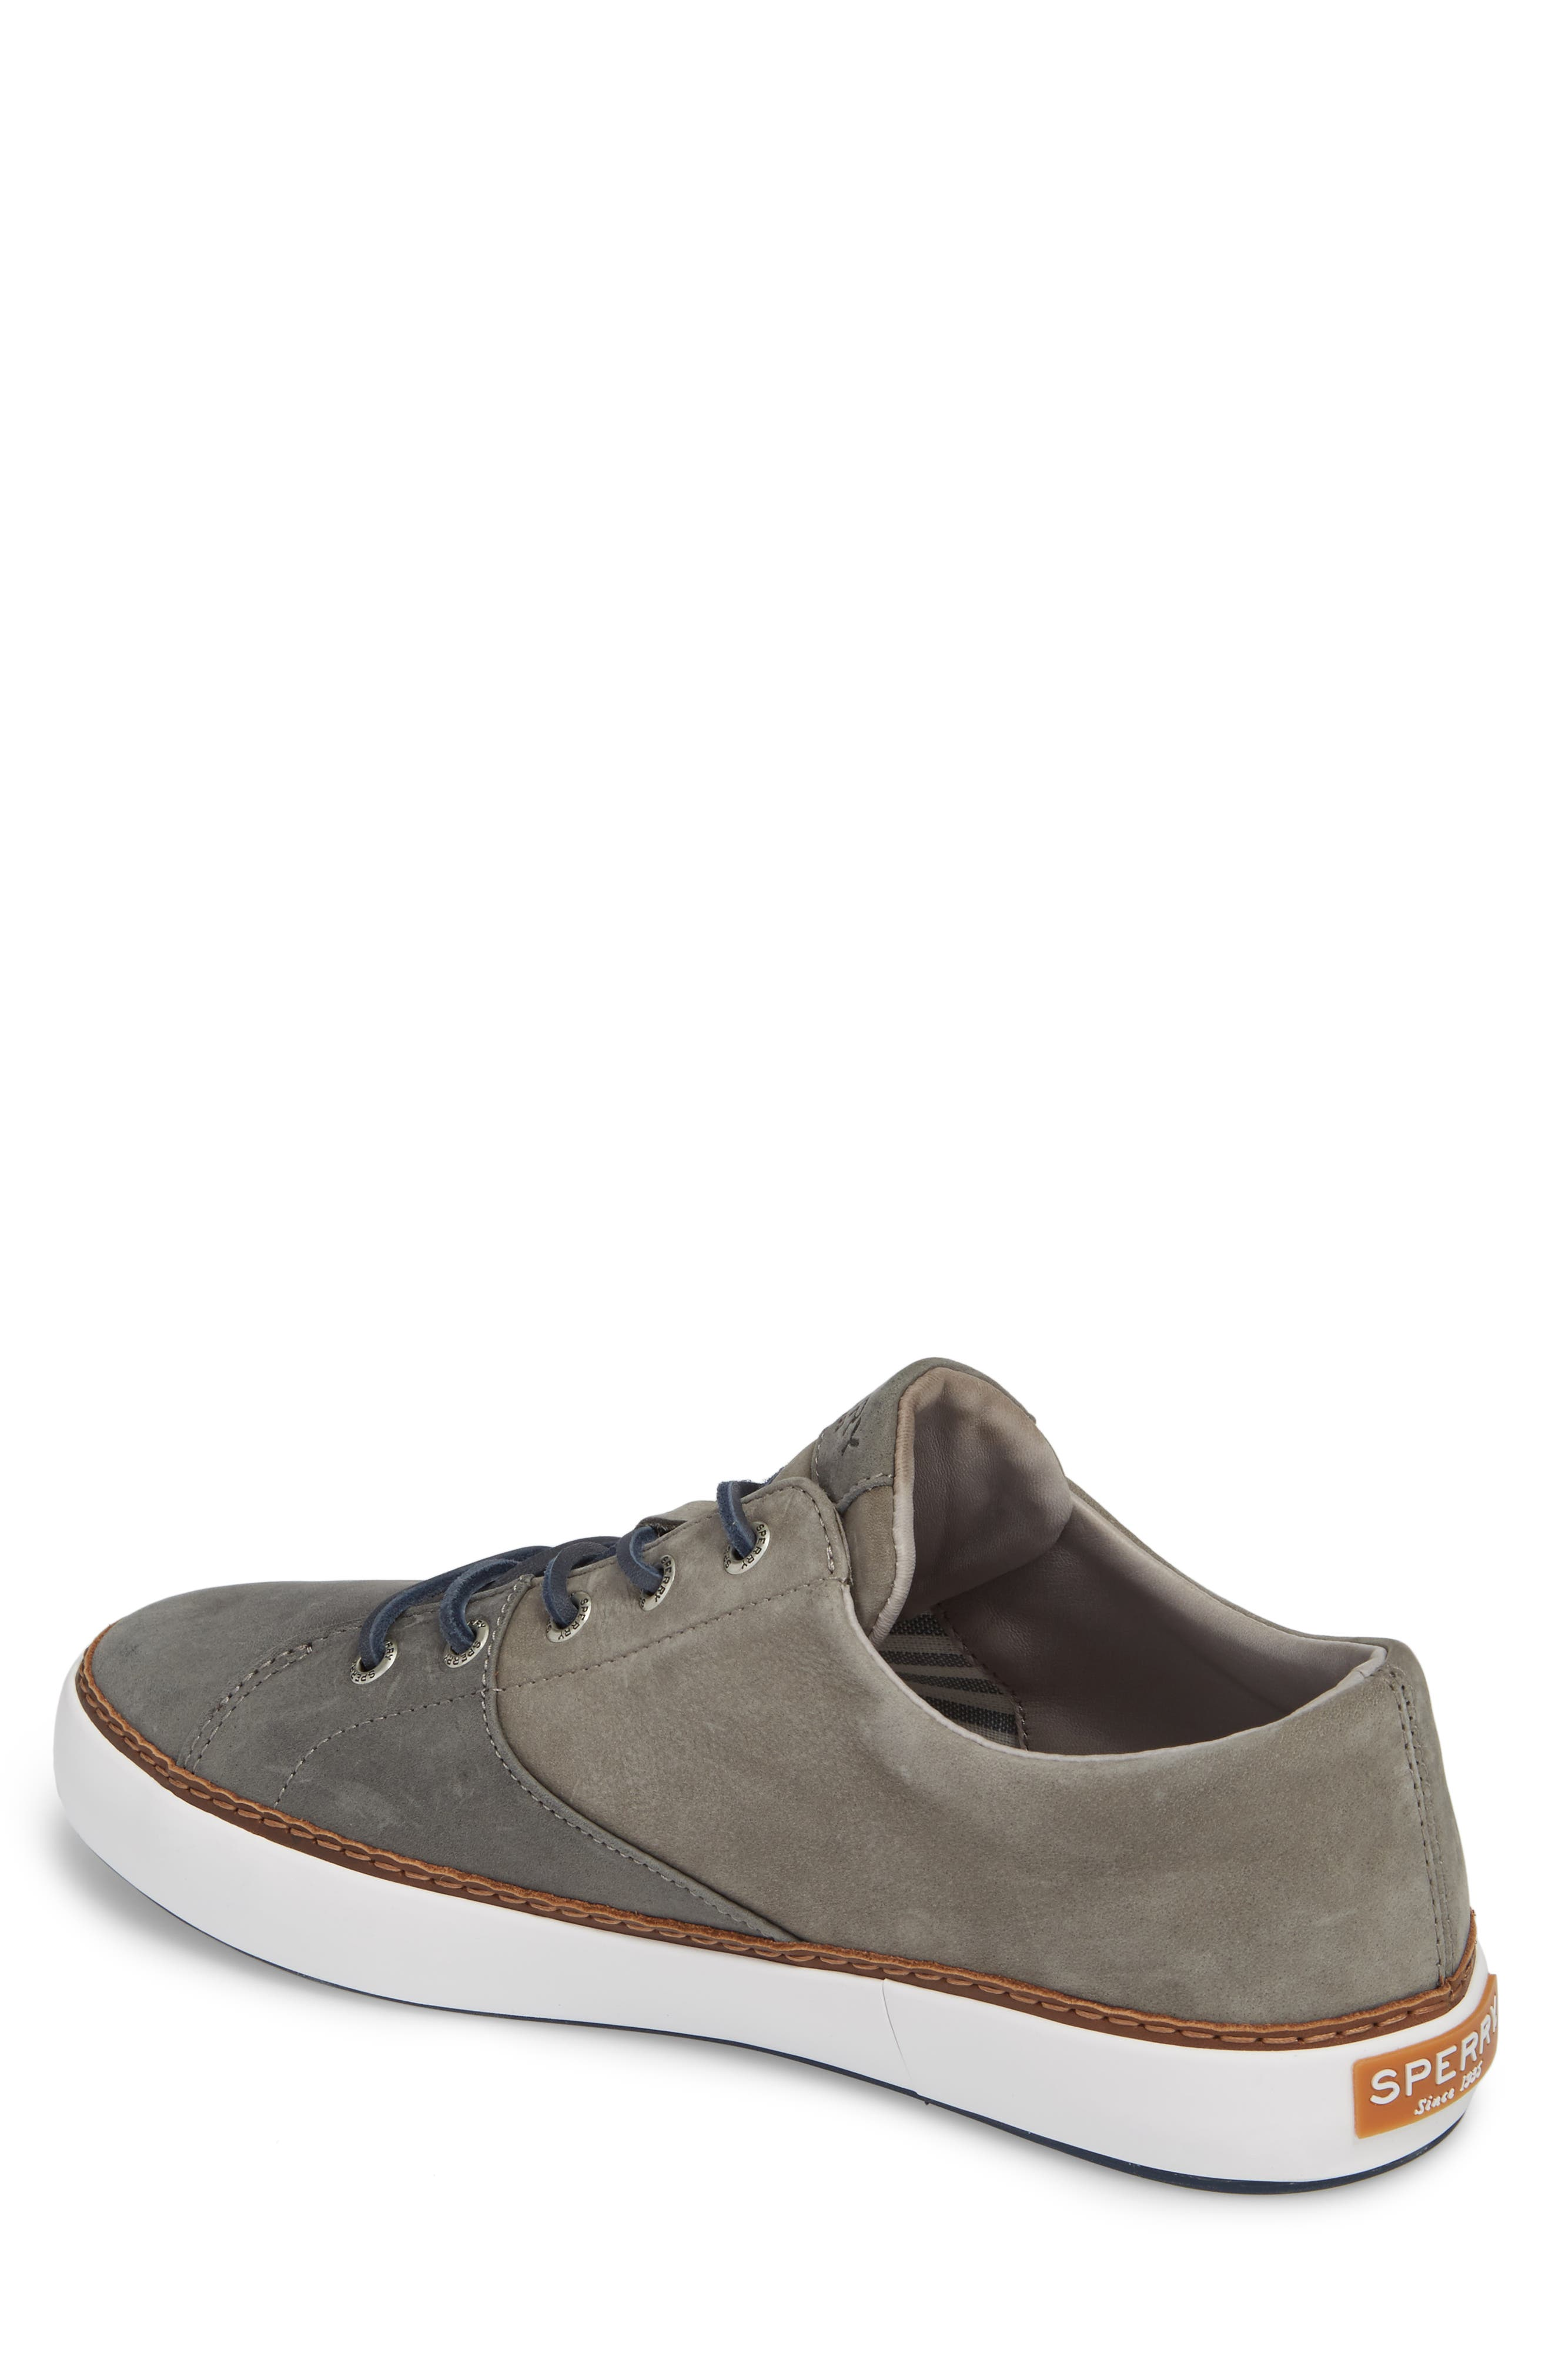 Gold Cup Haven Sneaker,                             Alternate thumbnail 2, color,                             Grey Leather